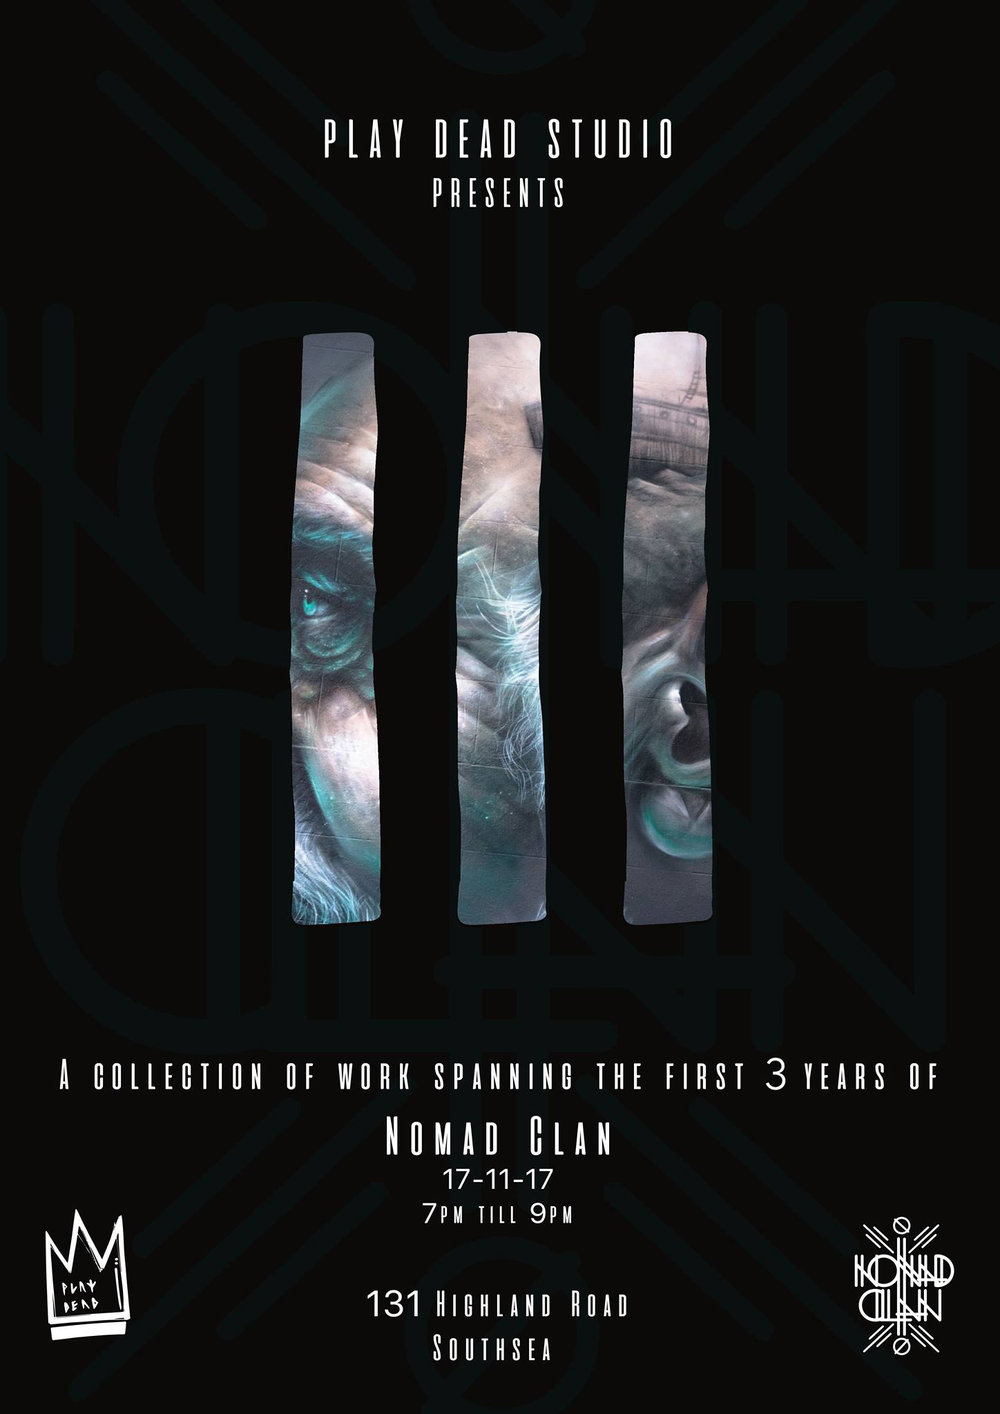 III, a solo show by the Nomad Clan